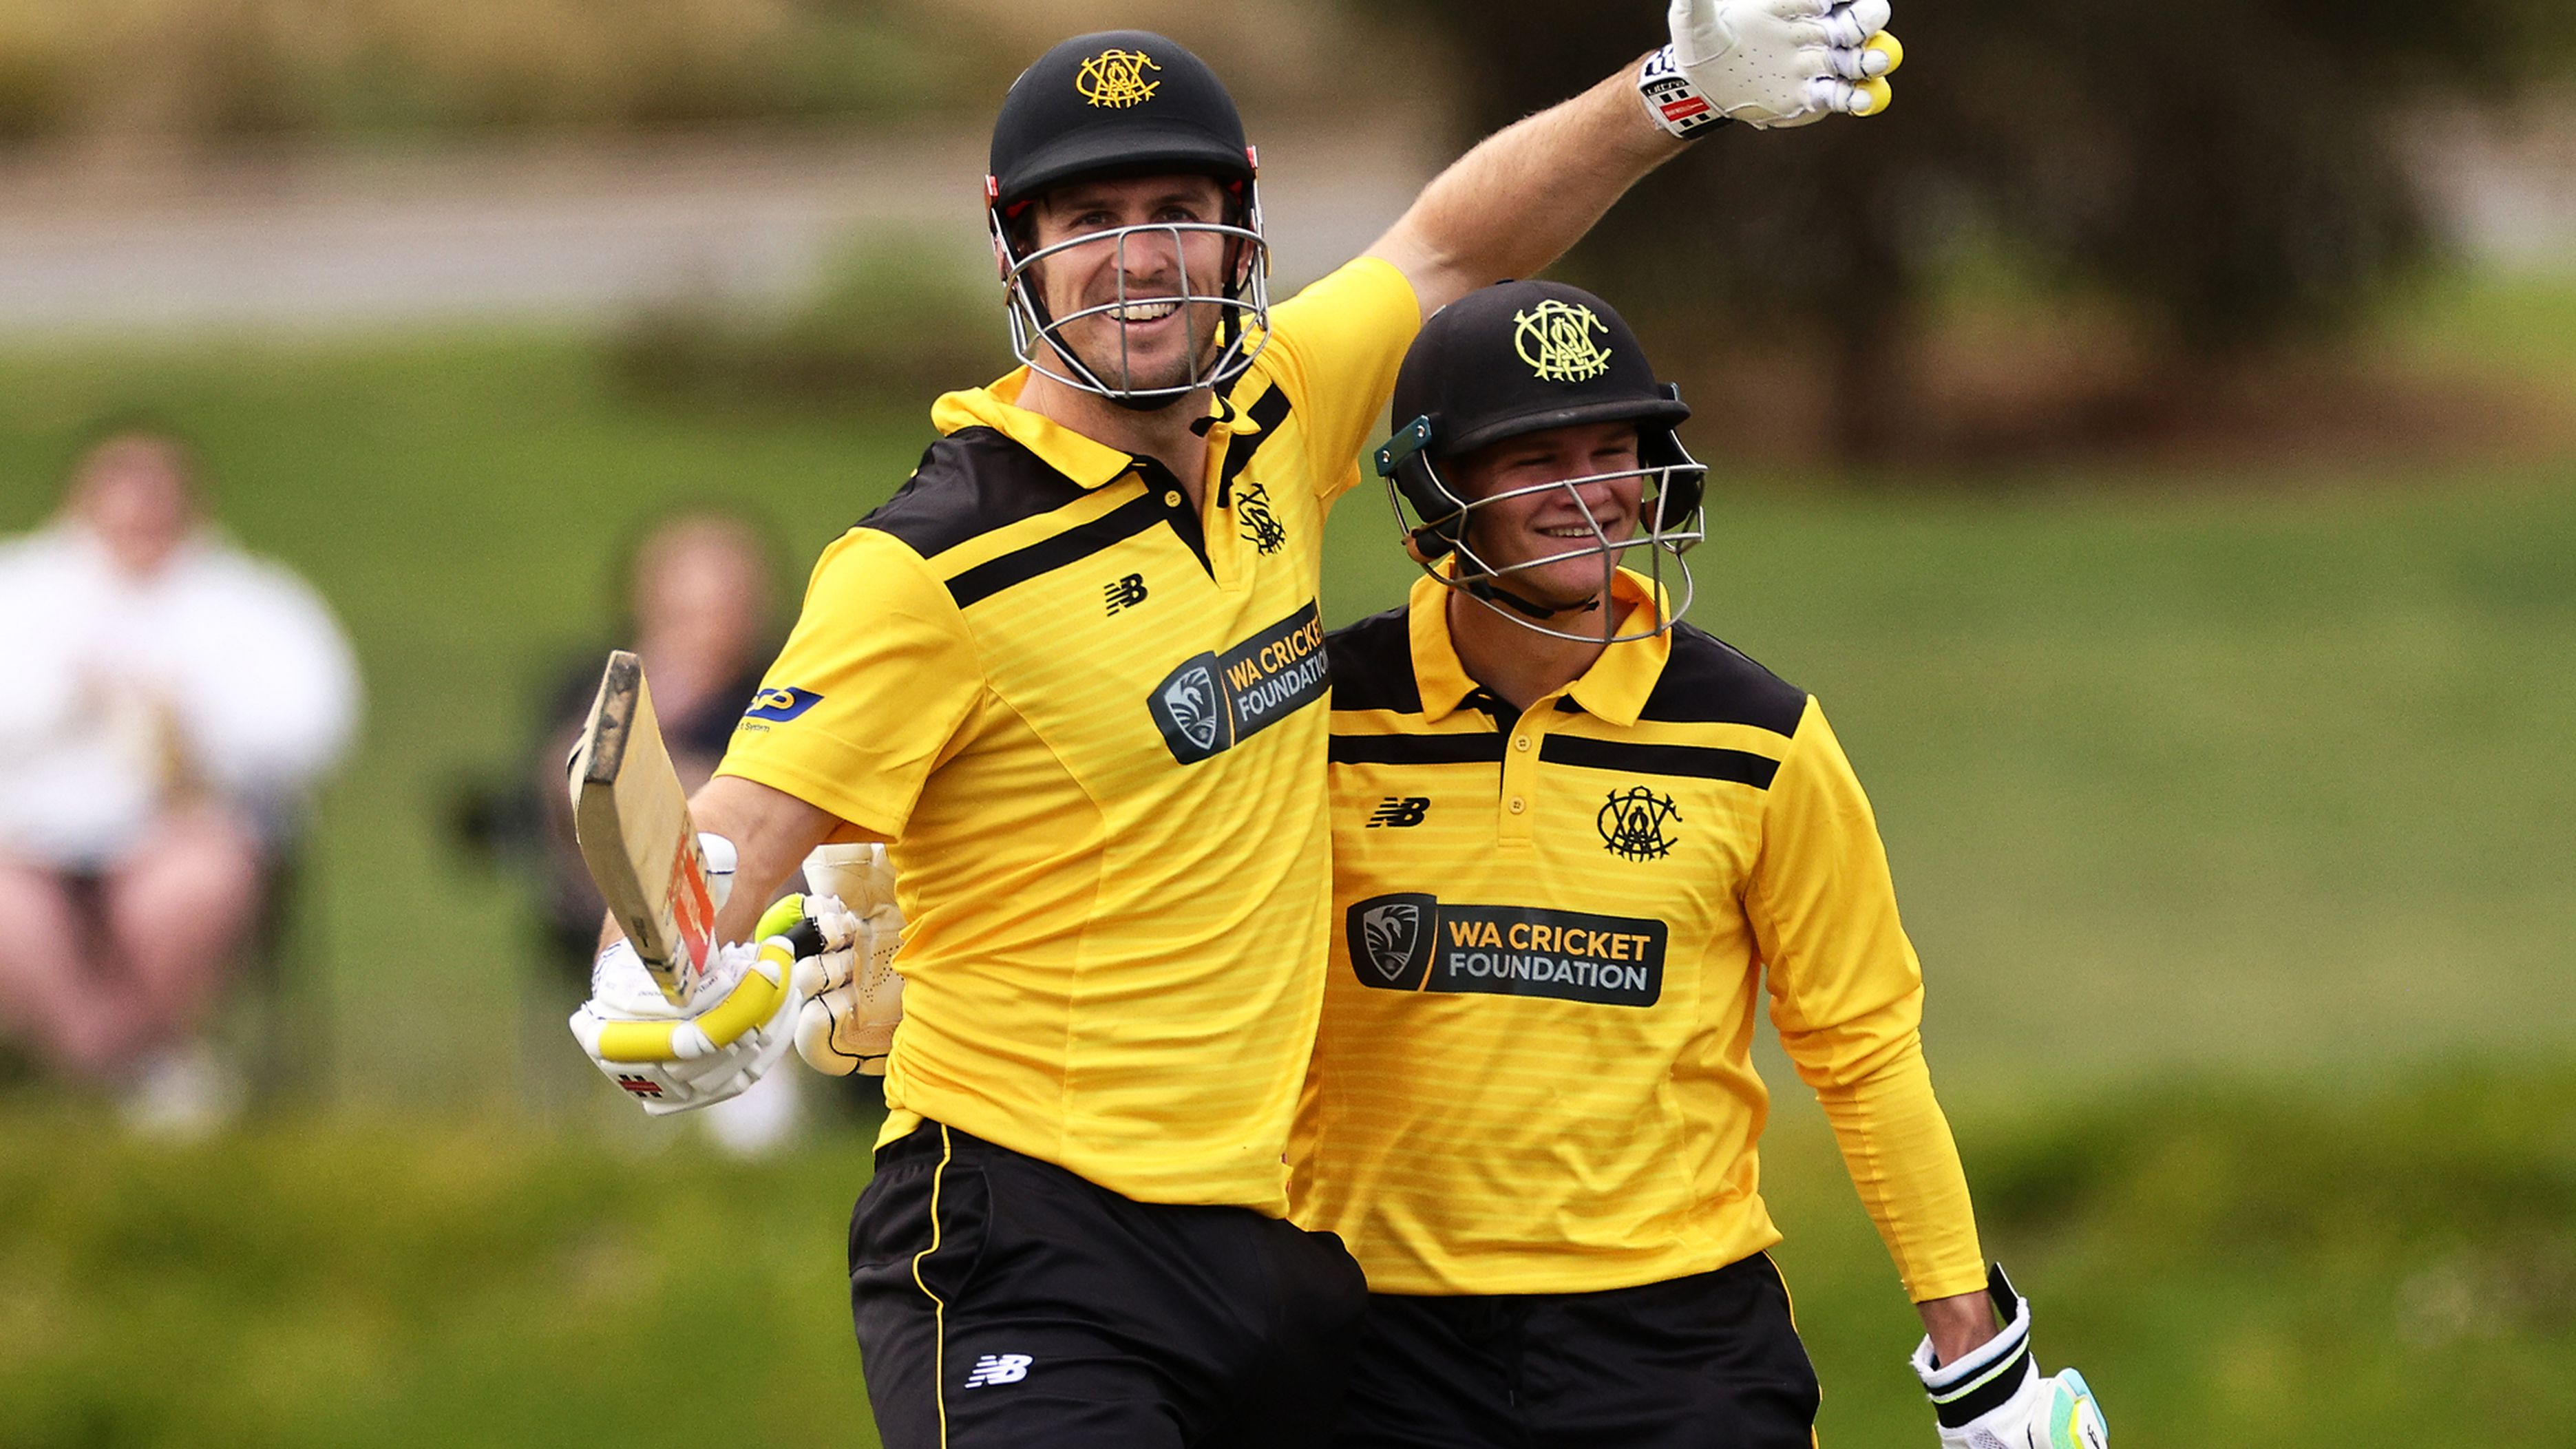 Mitchell Marsh of Western Australia celebrates after reaching his century during the Marsh One-Day Cup match between South Australia and Western Australia at Karen Rolton Oval.